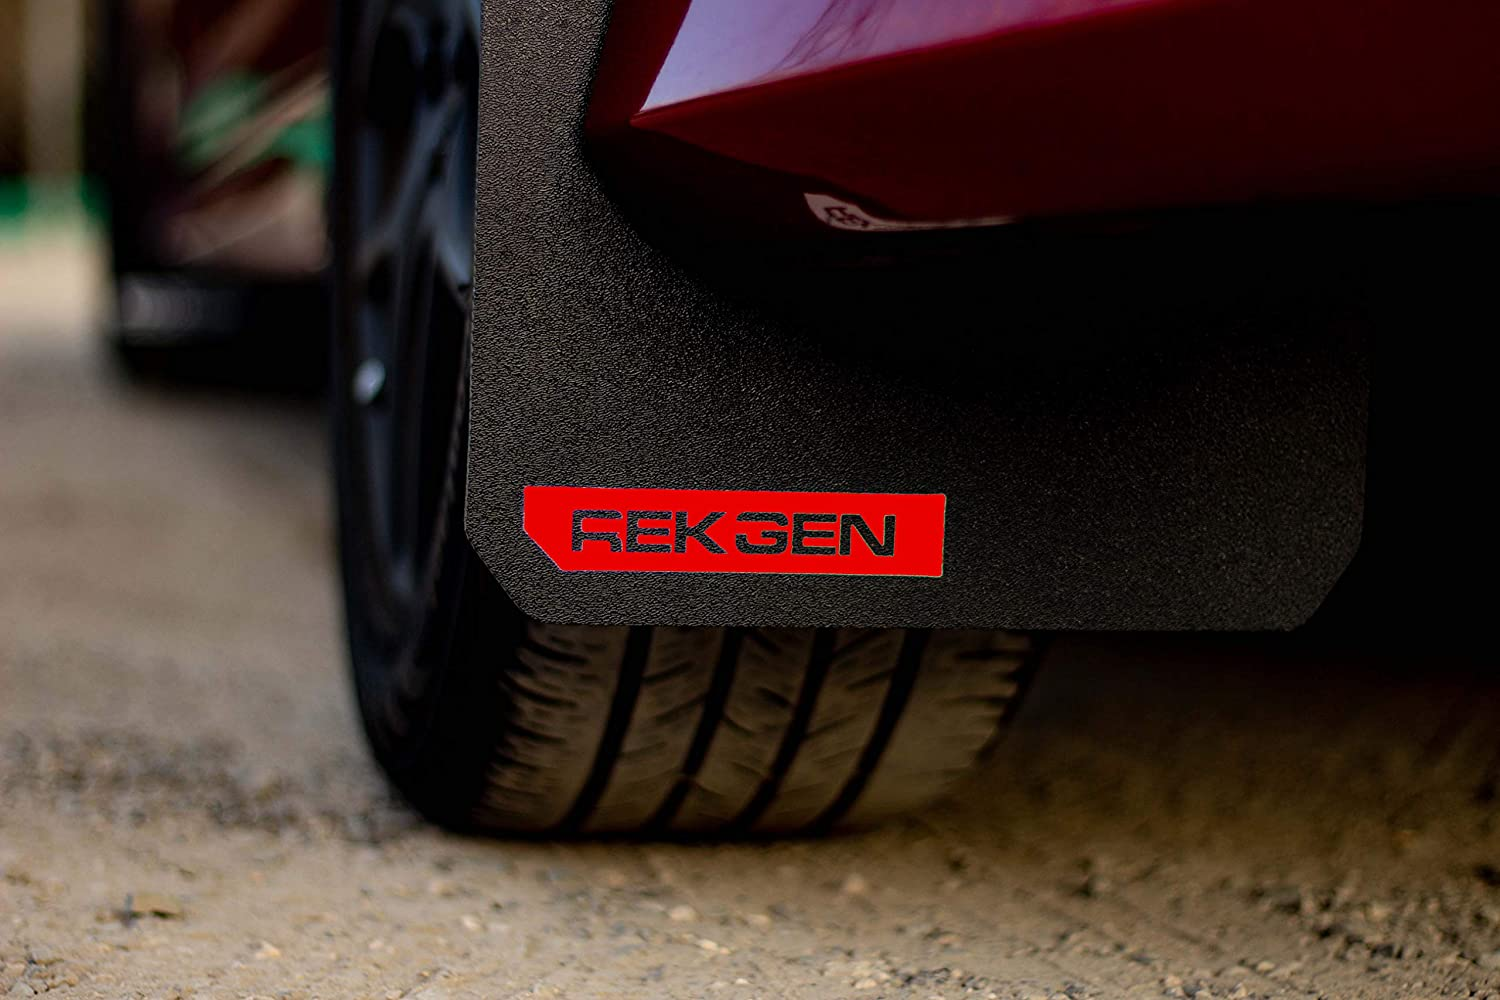 REK GEN Rally Mud Flaps Compatible w/Ford Focus 11+ (Red Logo)